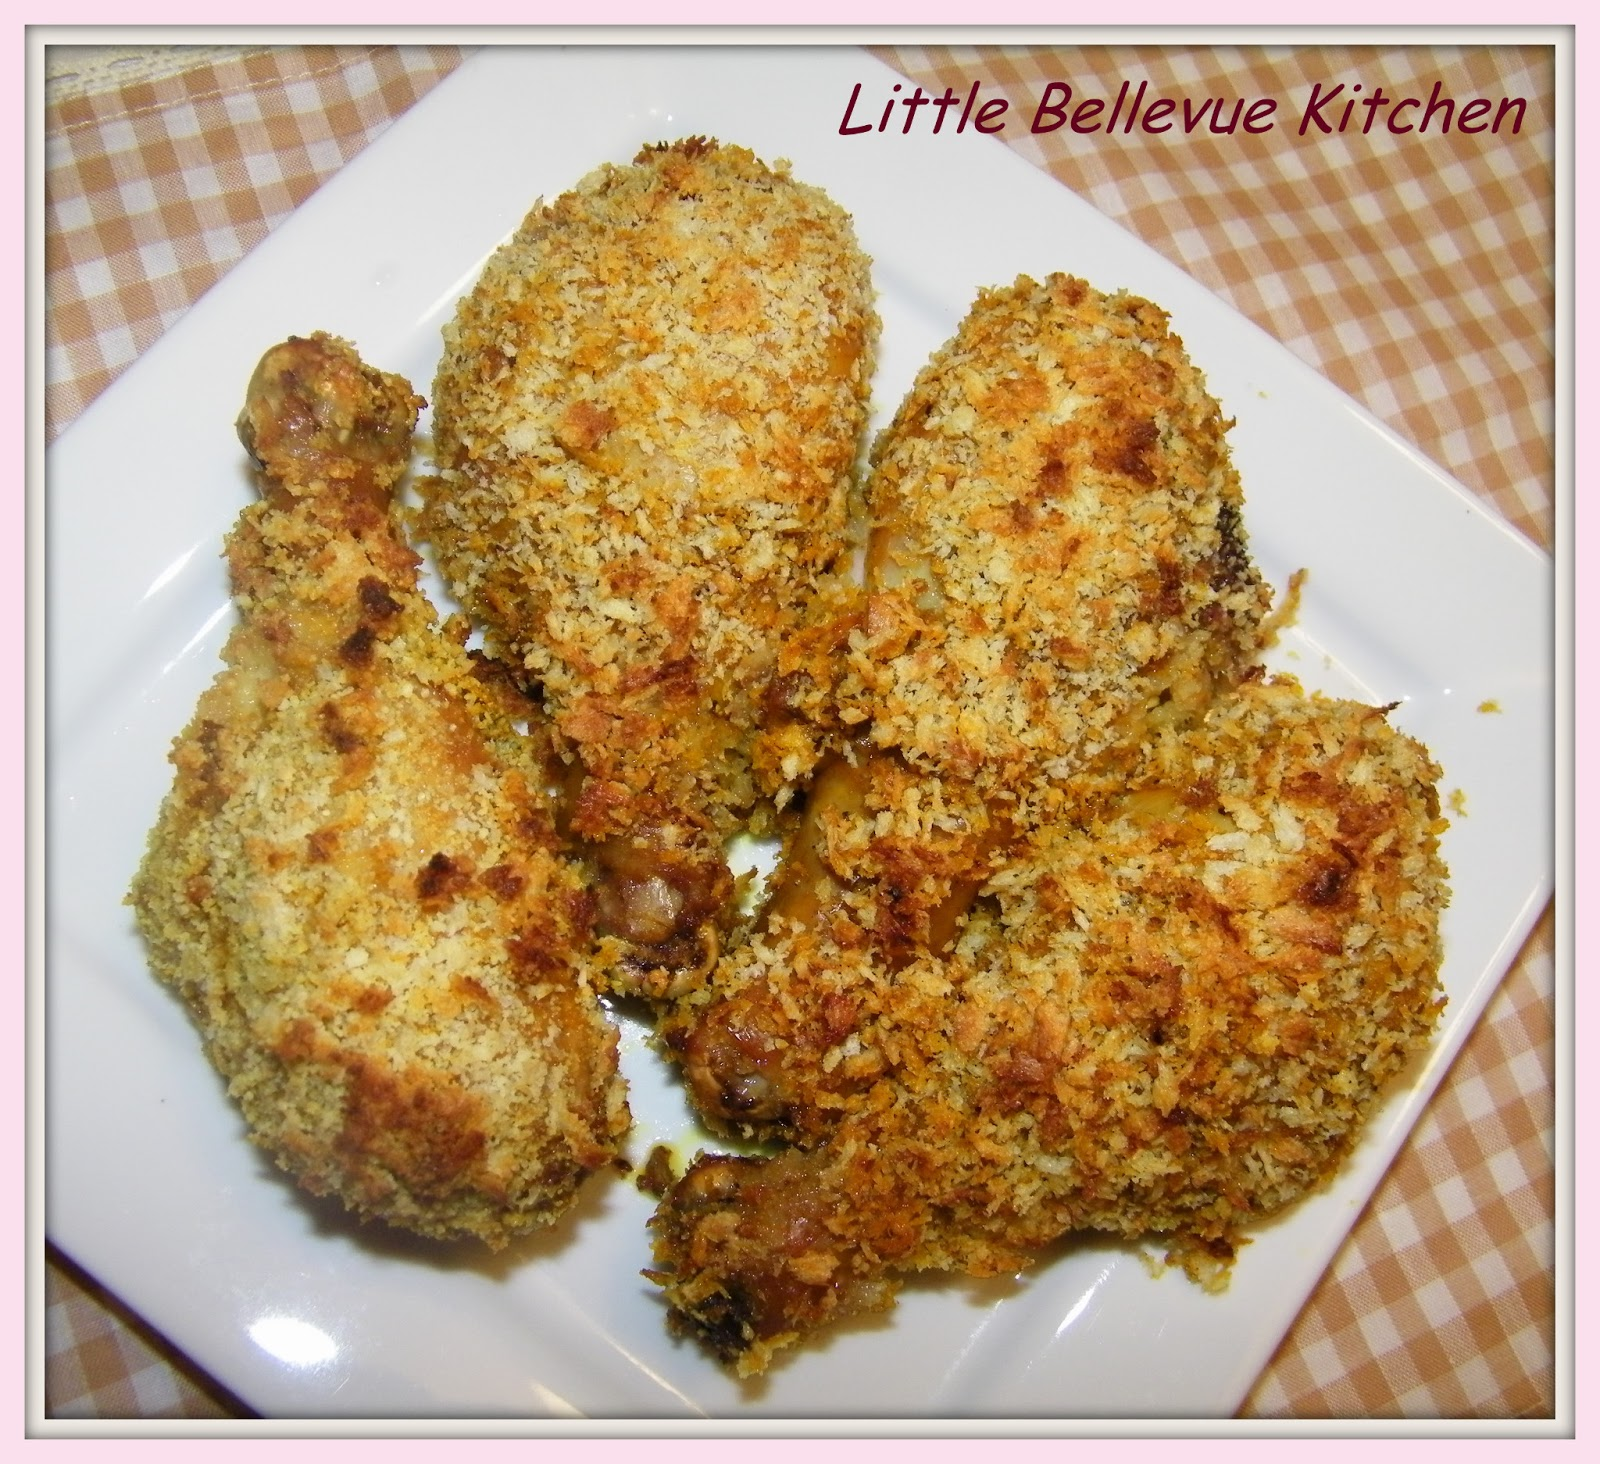 Little Bellevue Kitchen: Spicy Baked Breaded Chicken ...